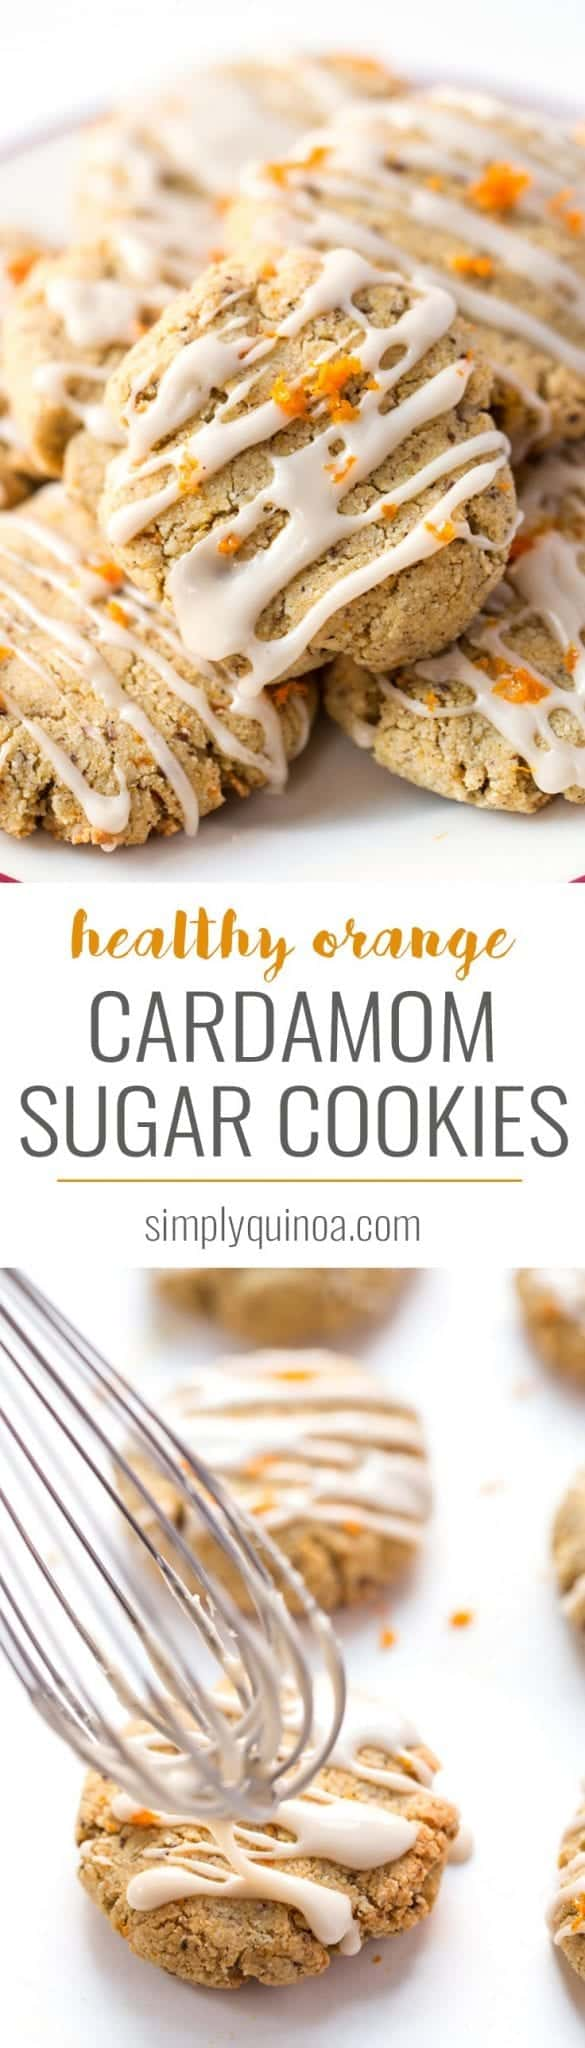 These Orange CARDAMOM Sugar Cookies are a fun twist on the classic recipe. Made with an almond flour base, they're healthy, flavorful, easy and delicious! [vegan + gluten-free]